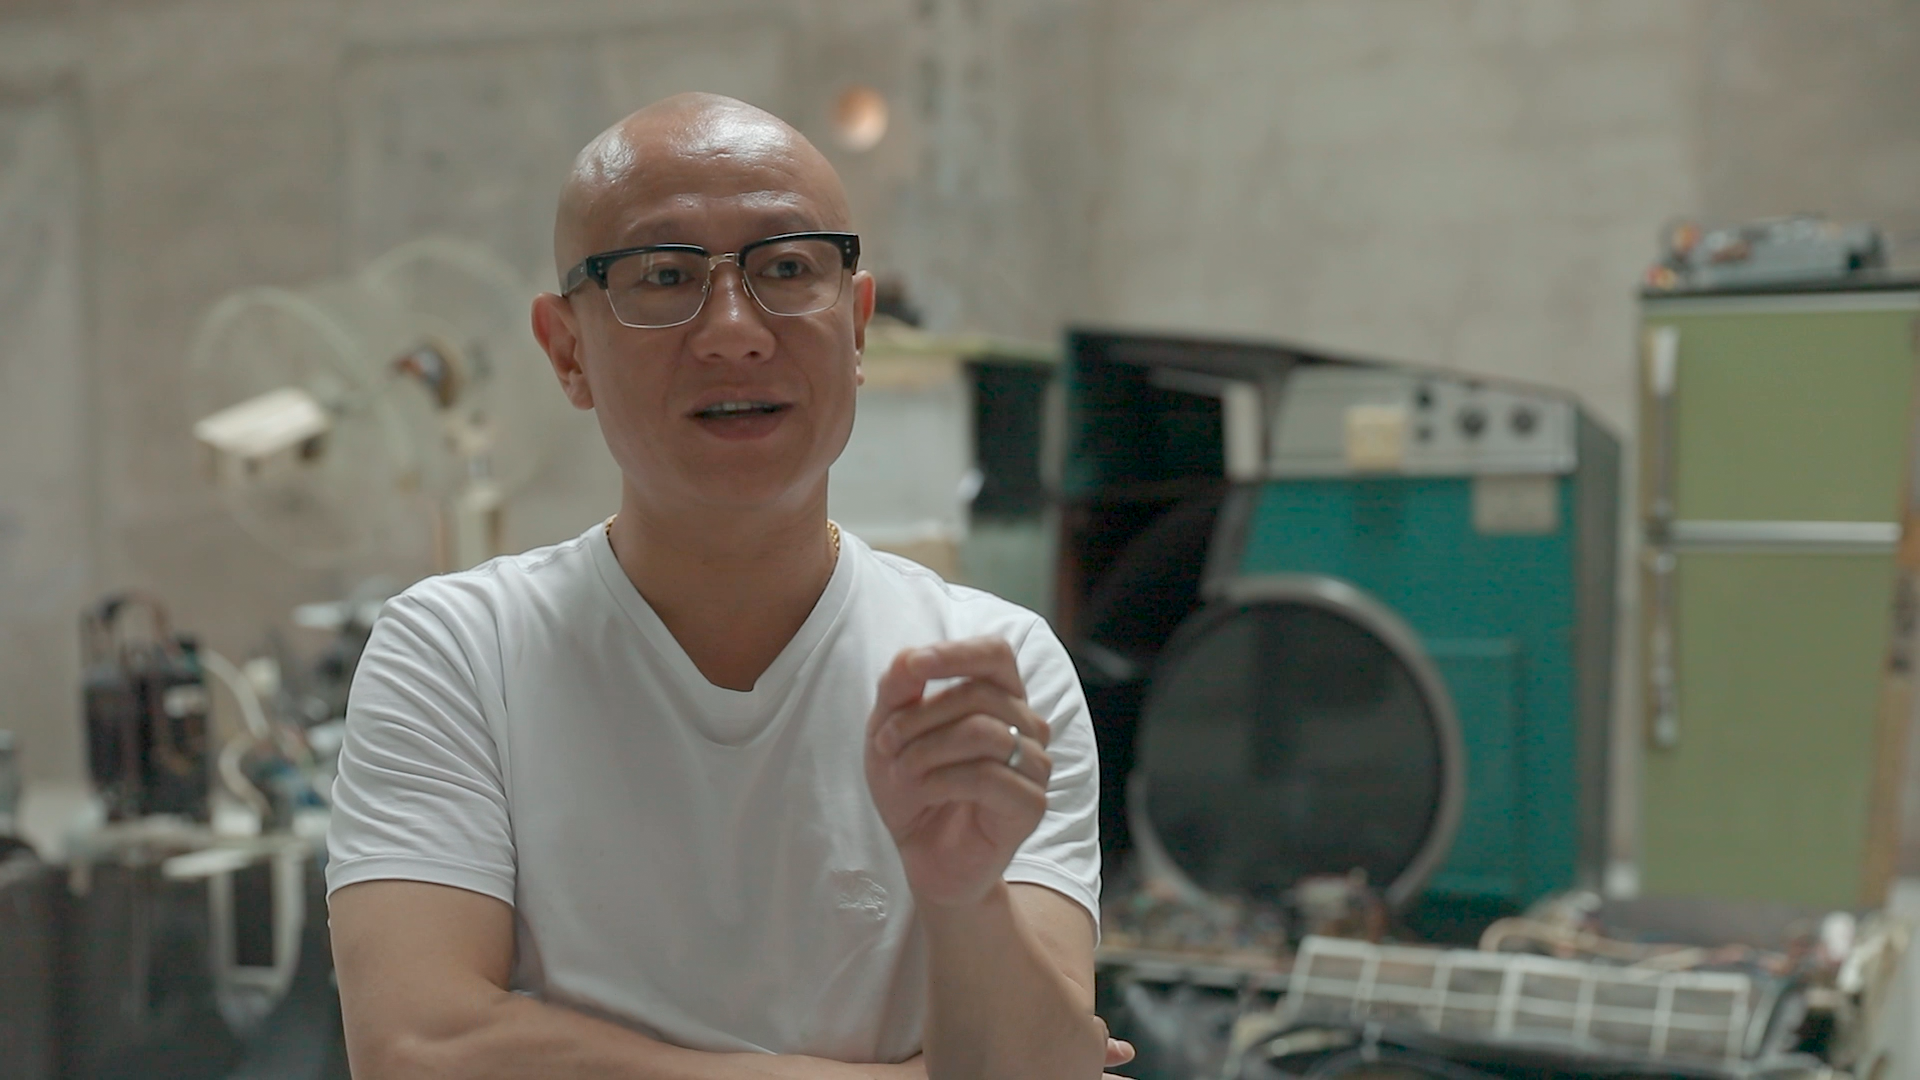 An interview with Liu Wei